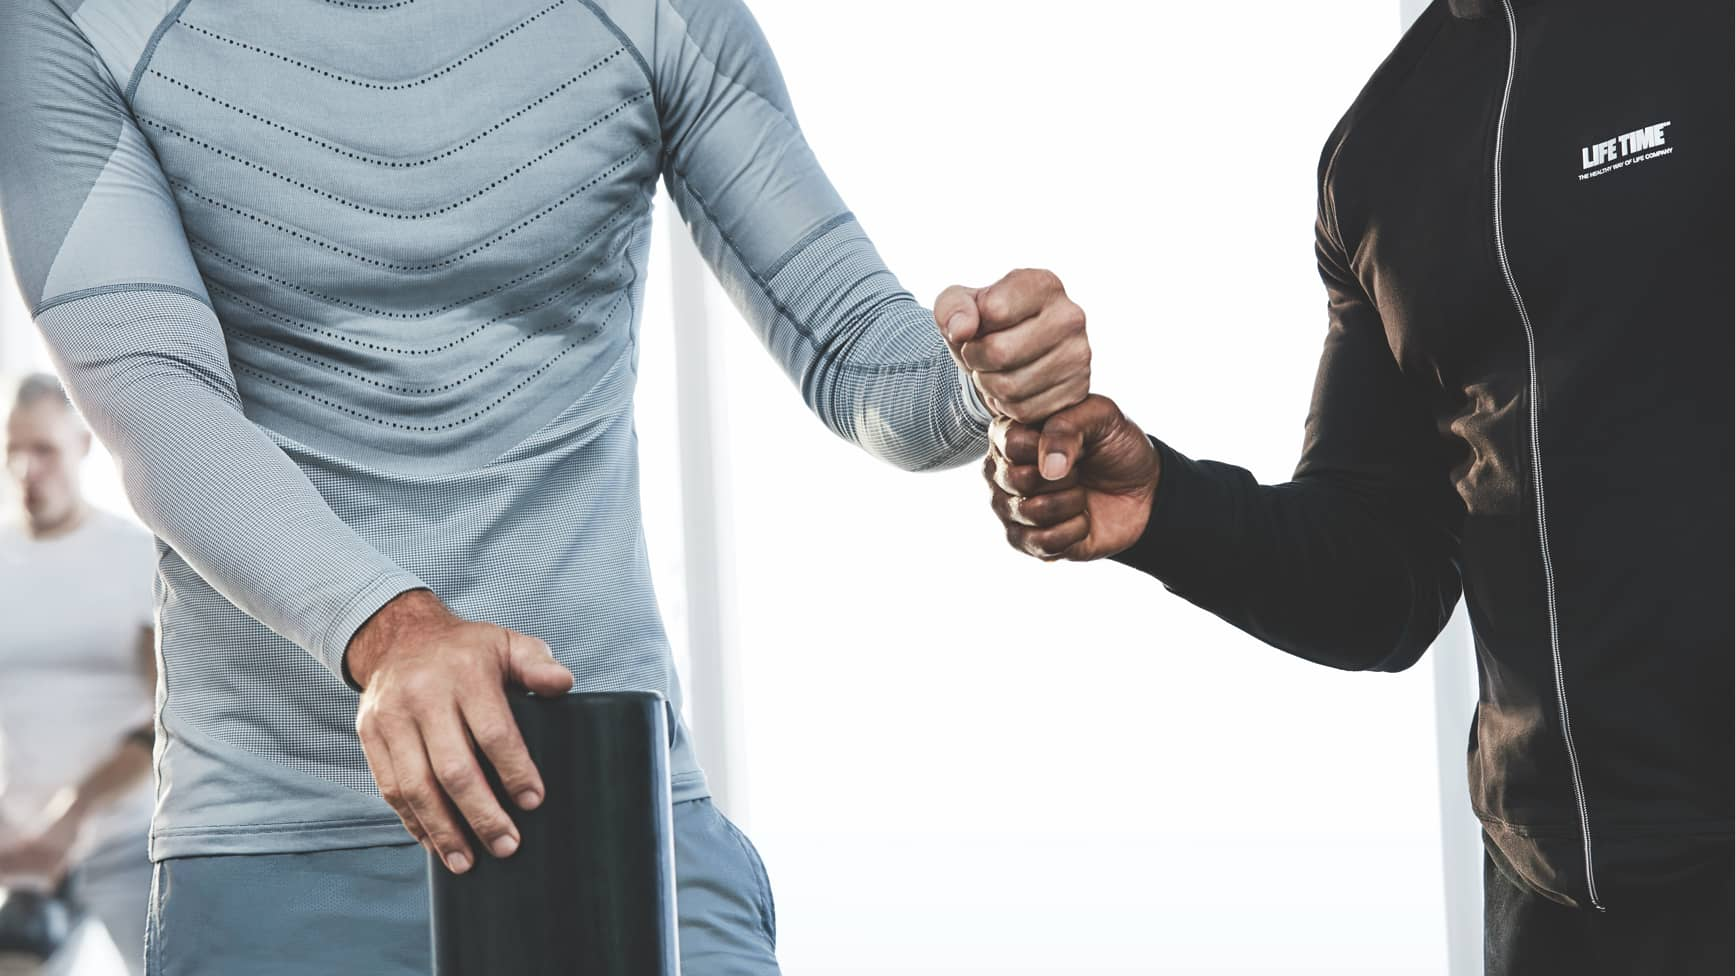 A trainer and his client share a fist bump during a workout